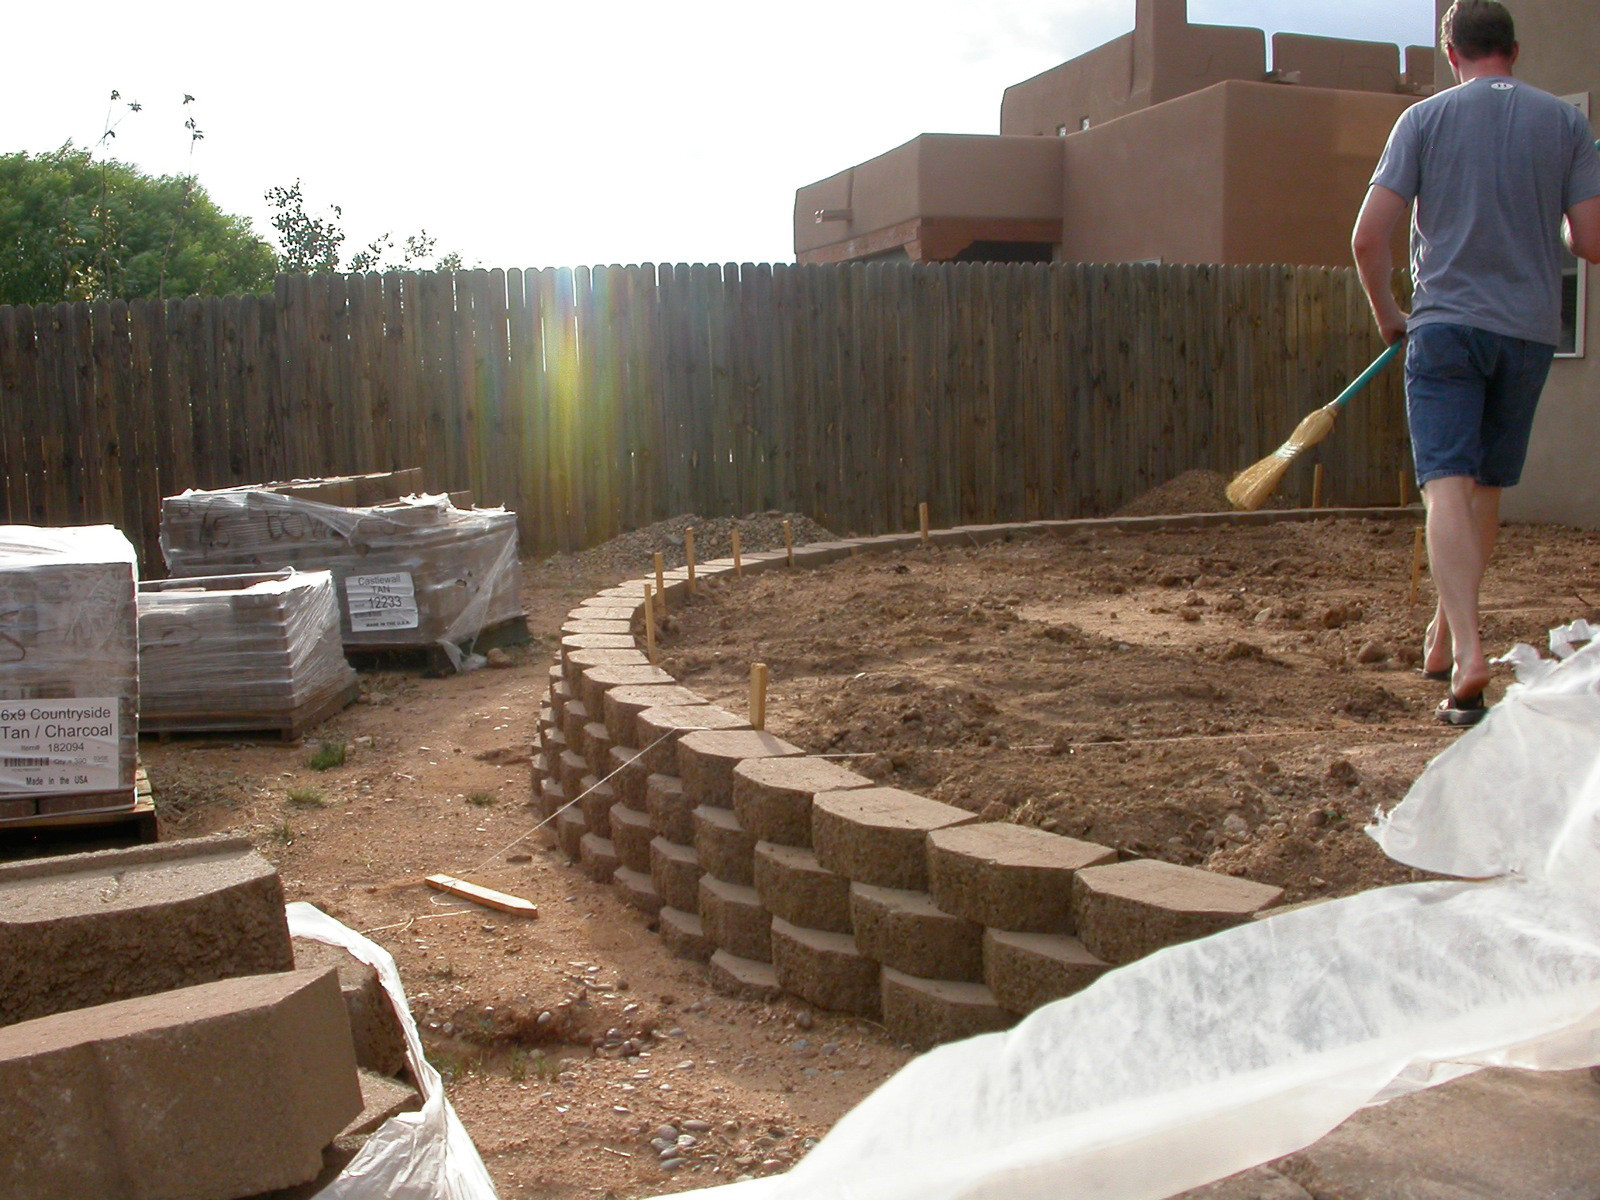 Best ideas about DIY Retaining Wall . Save or Pin Retaining Wall Ideas Retaining Wall Design Now.